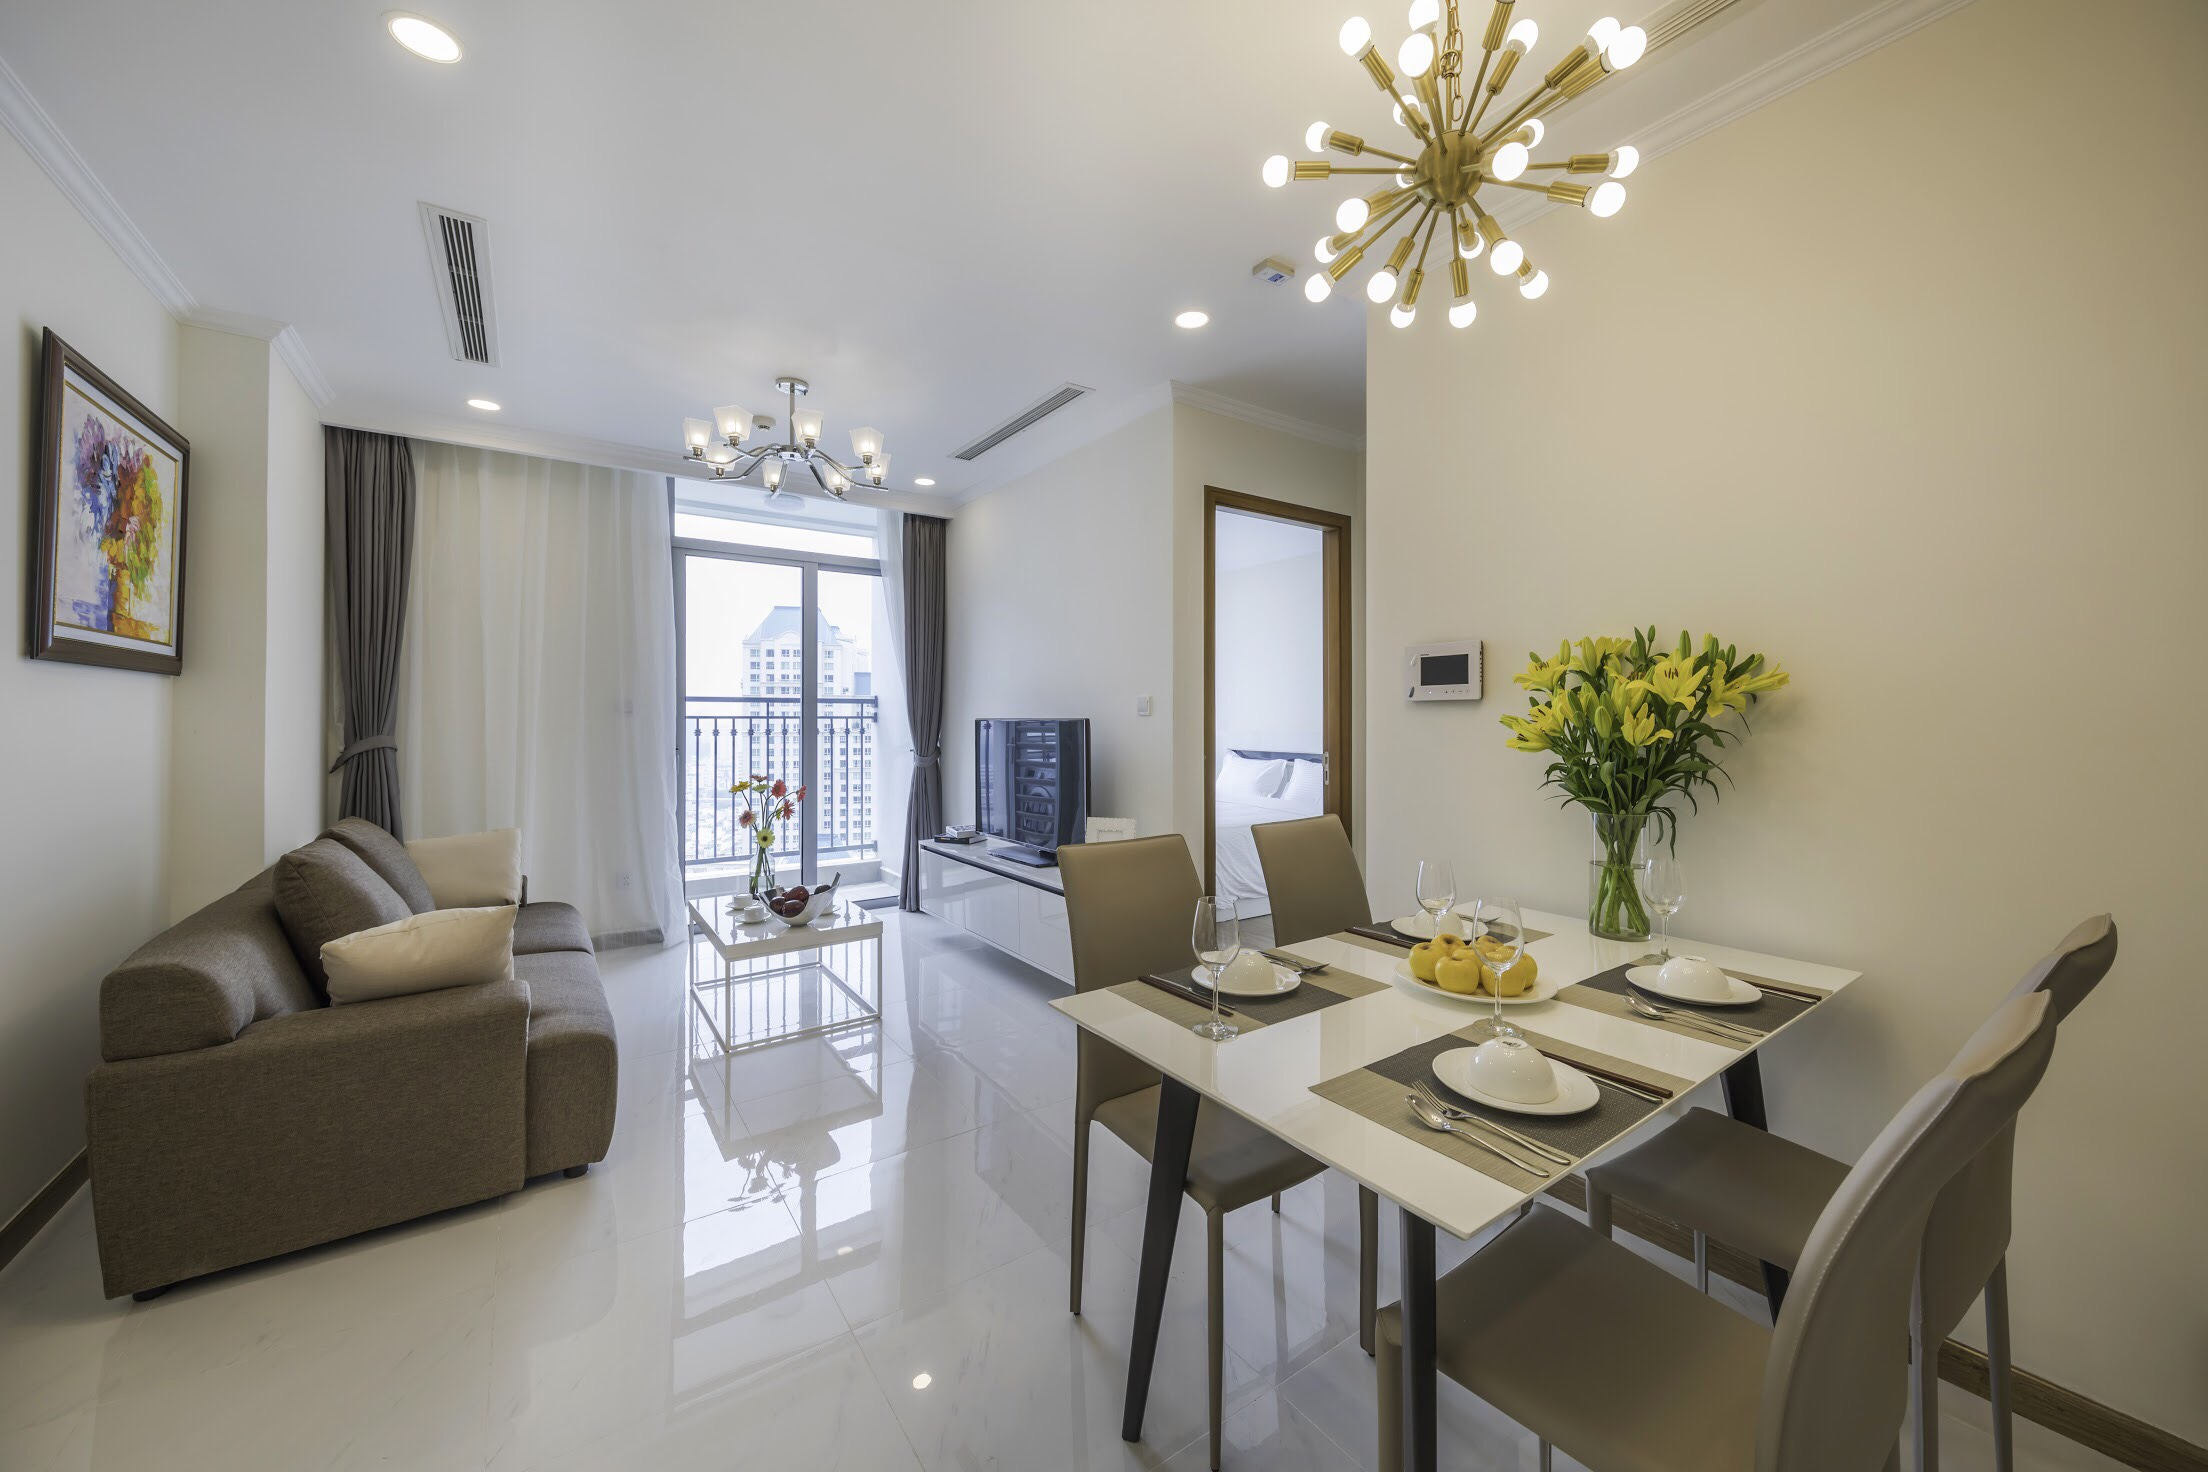 vinhomes central park apartment for rent in binh thanh district hcmc BT105L533 (1)